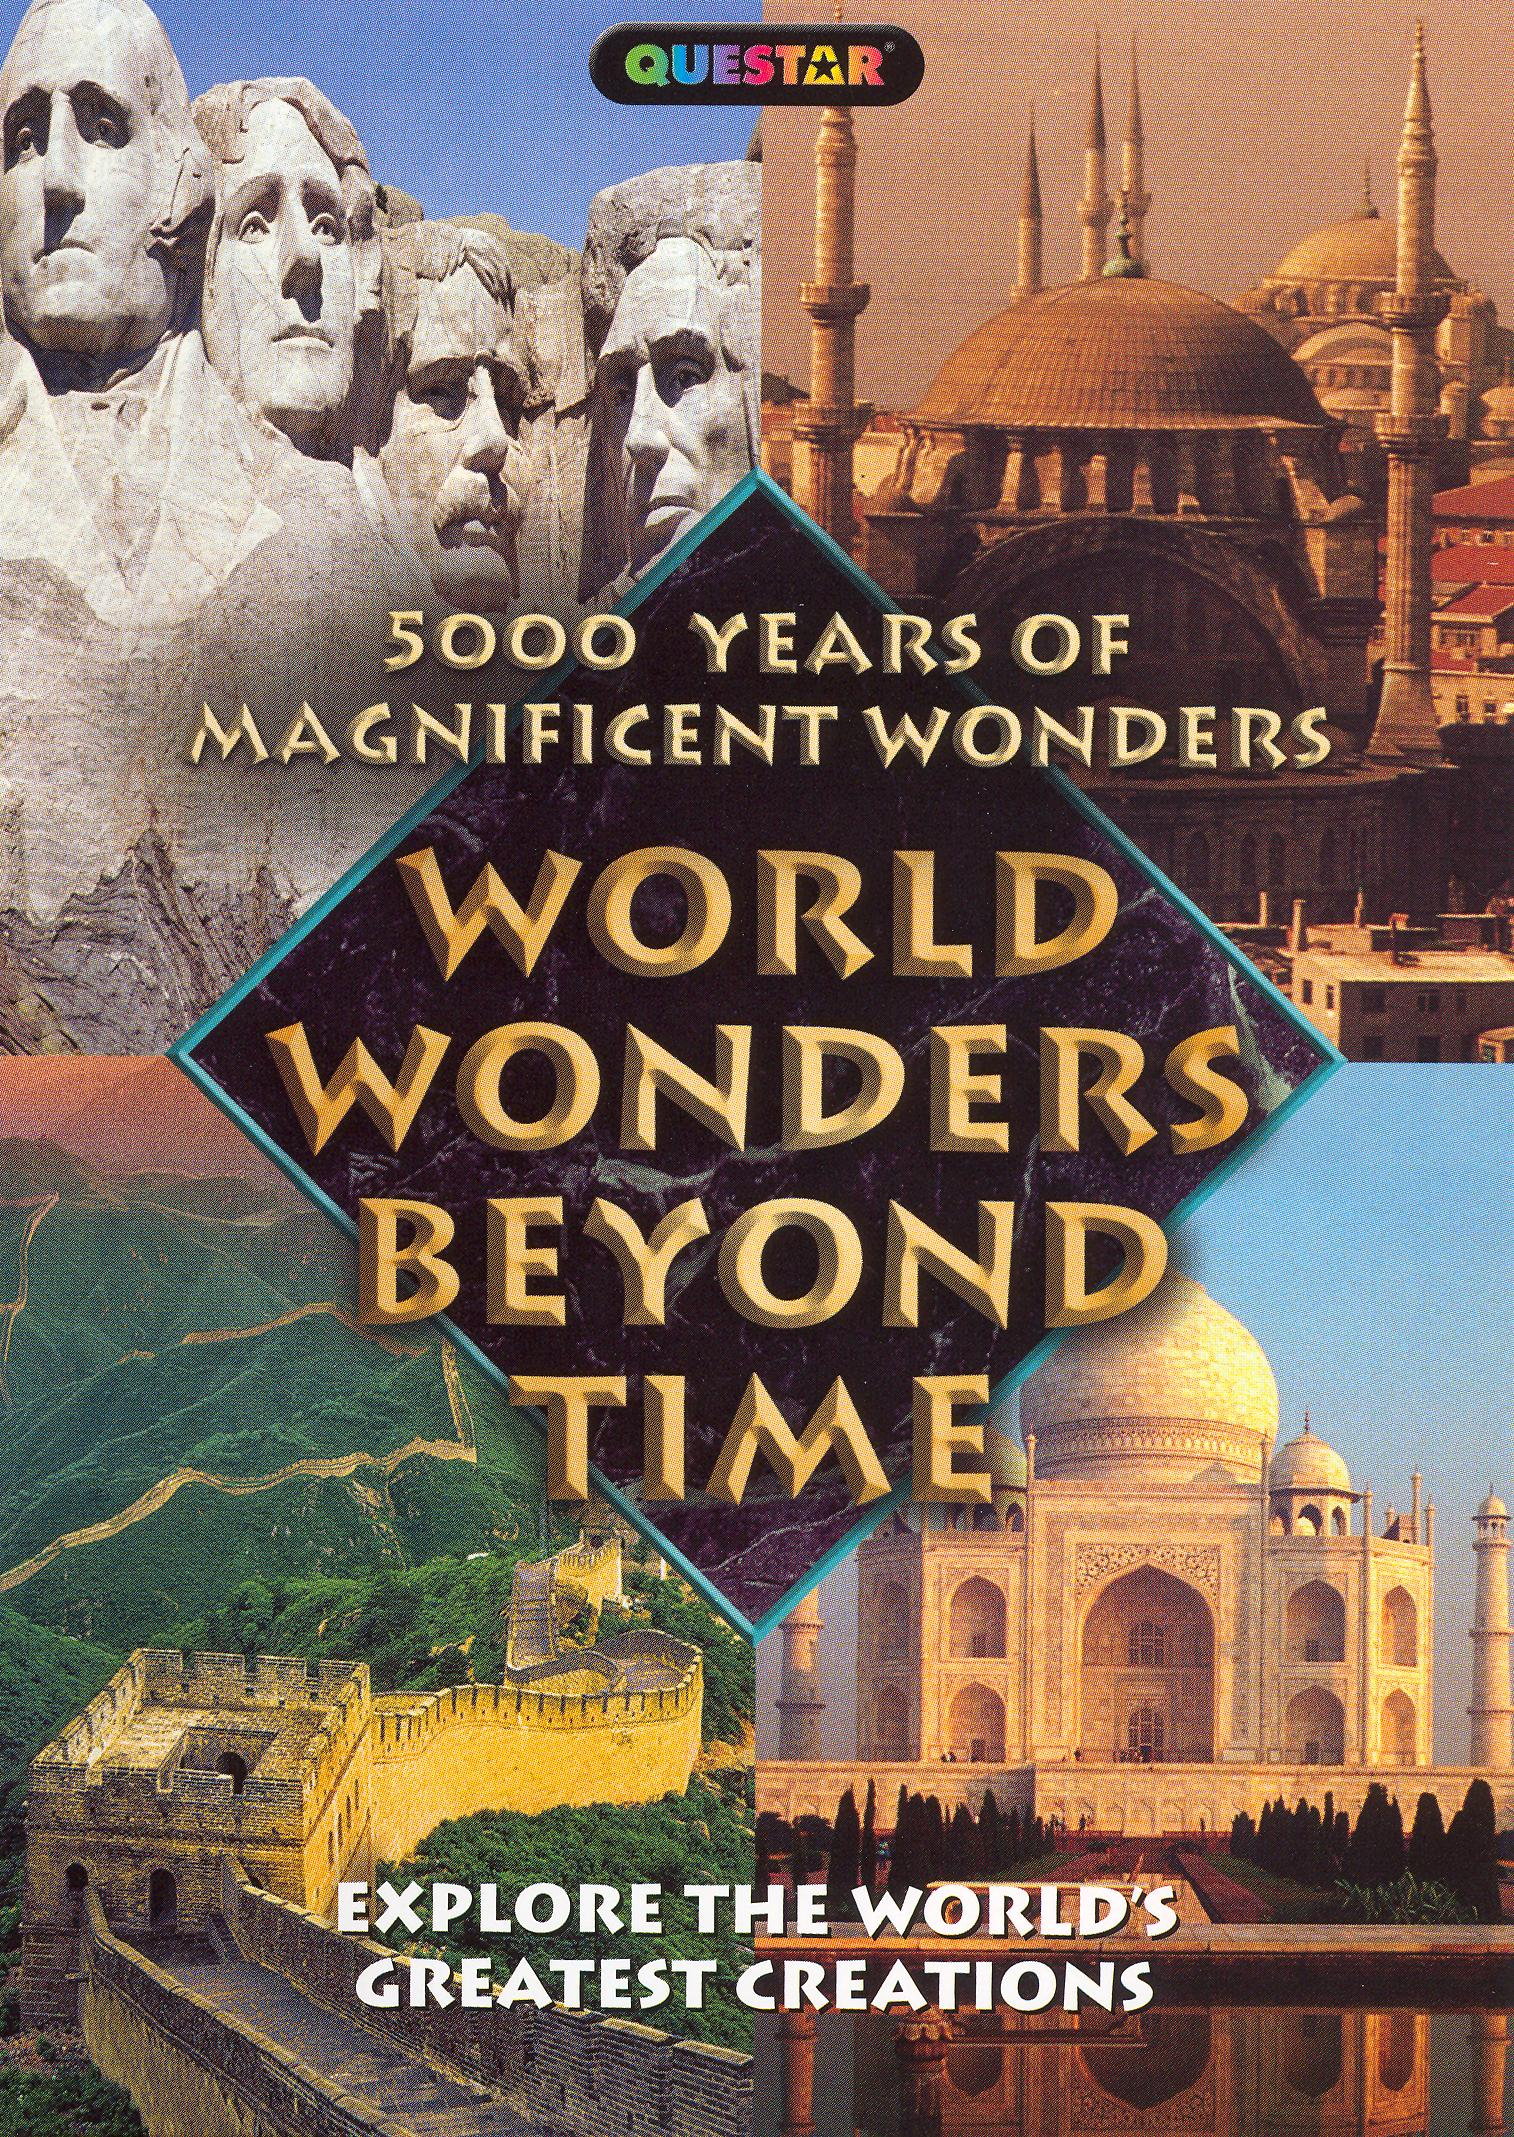 5000 Years of Magnificent Wonders: World Wonders Beyond Time